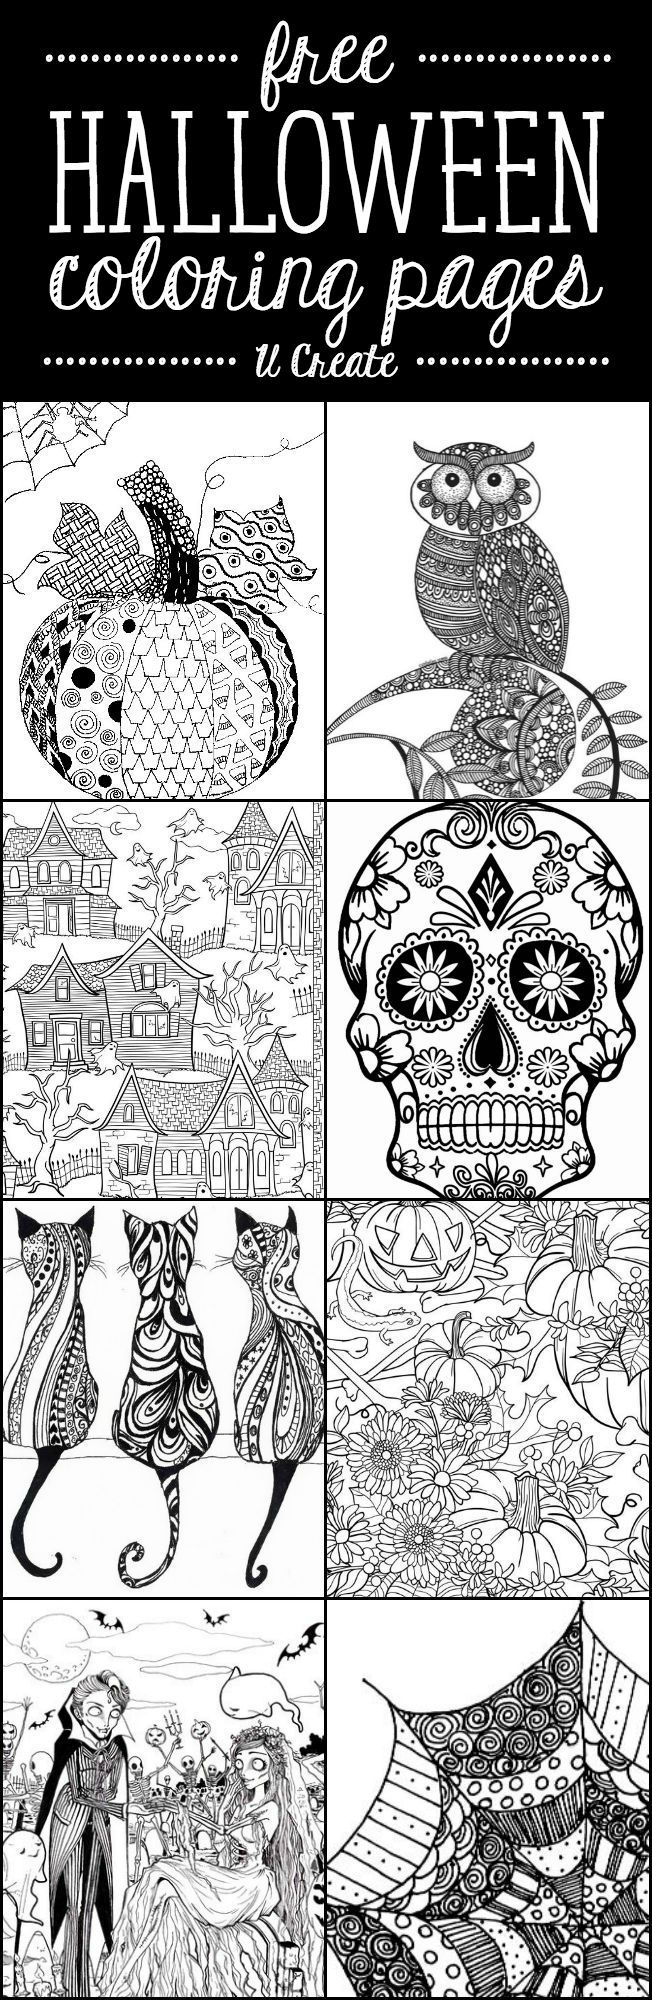 Free halloween adult coloring pages at u create great for relaxing